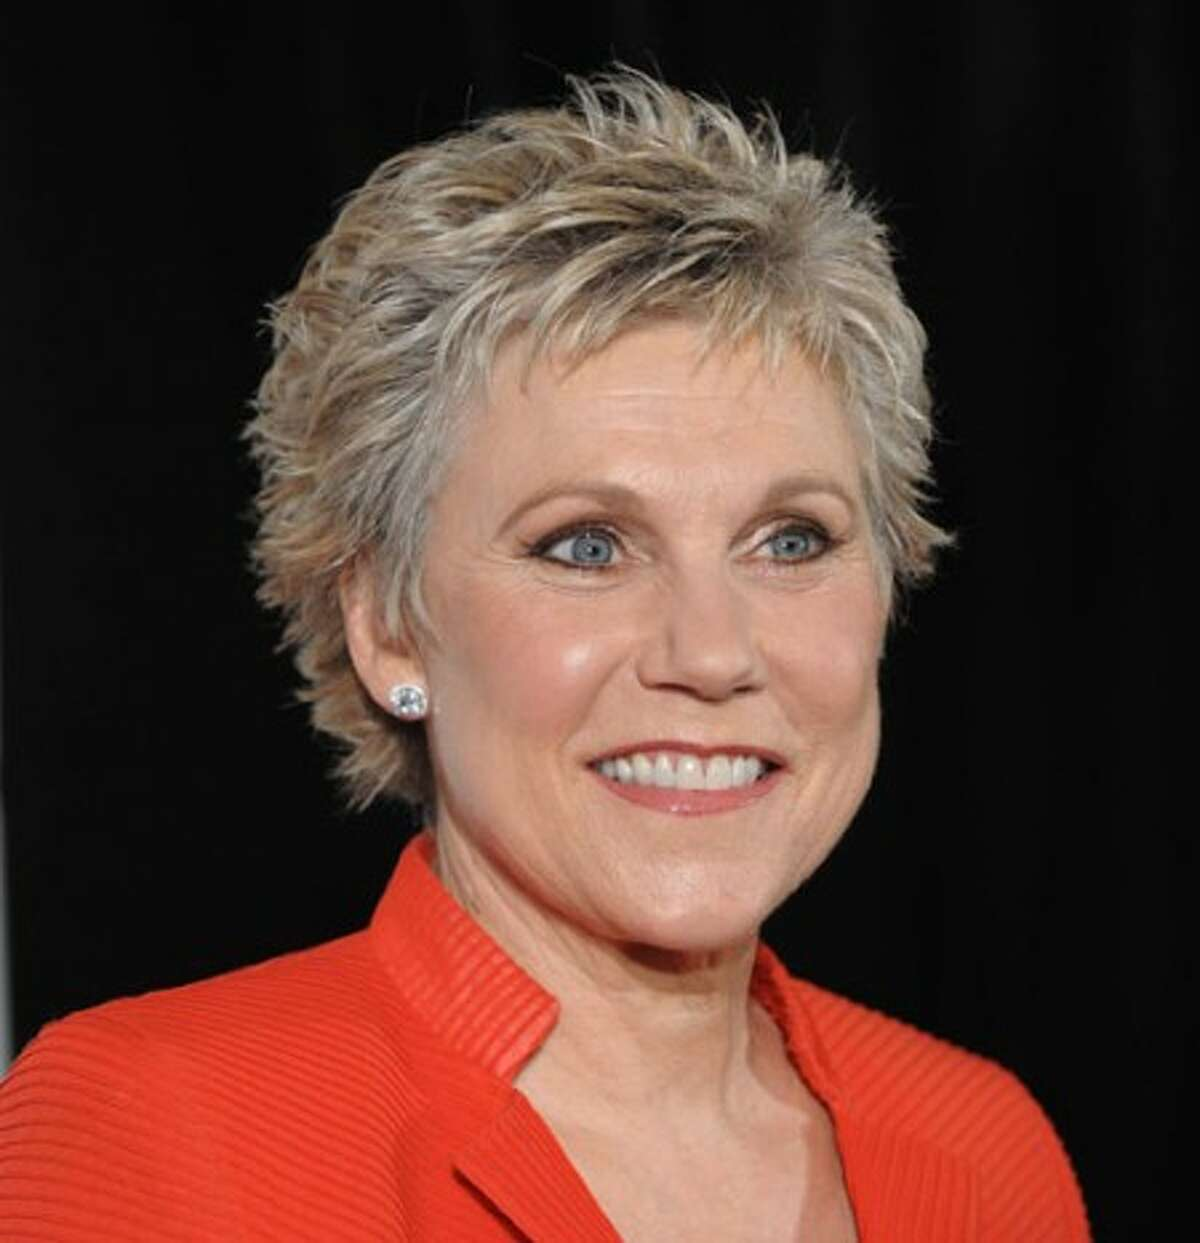 FILE - In this June 19, 2008 file photo, inductee Anne Murray arrives at the 2008 Songwriters Hall of Fame induction ceremony in New York. (AP Photo/Peter Kramer, file)